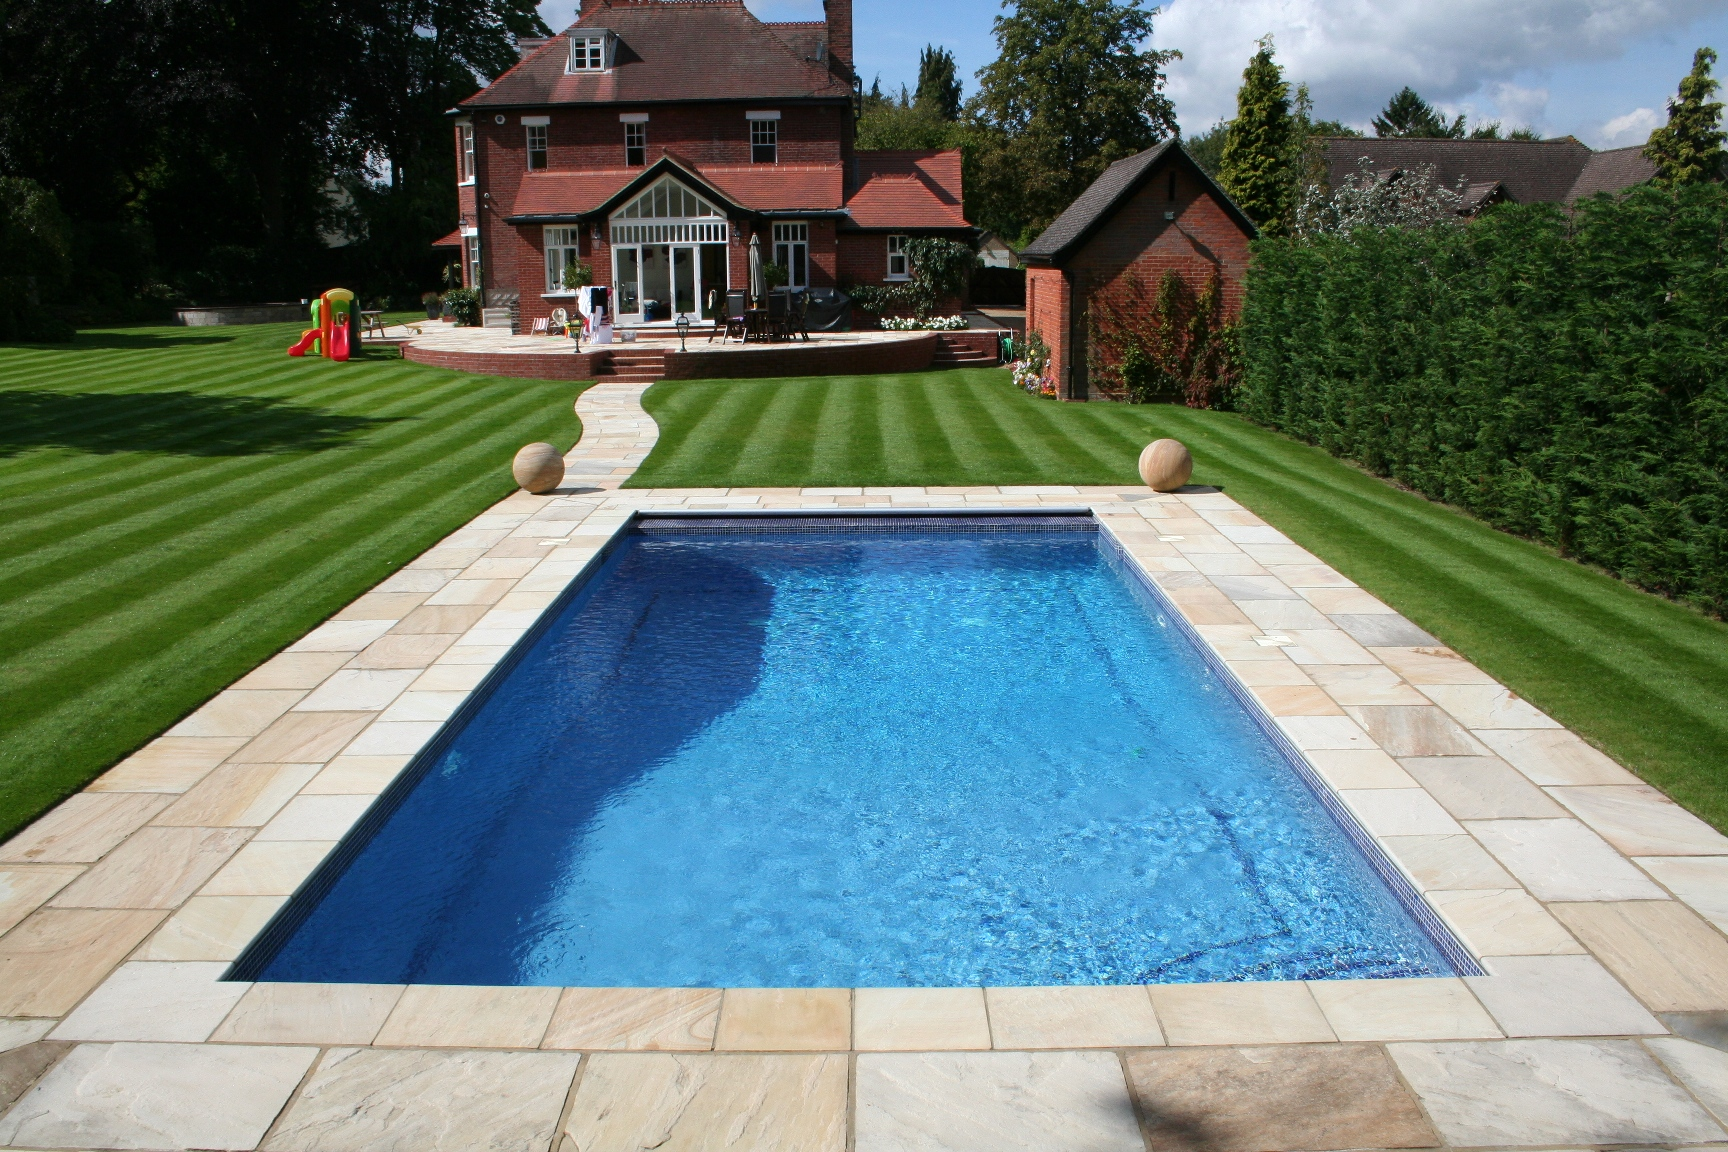 Ordinaire Backyard Landscaping Ideas Swimming Pool Design